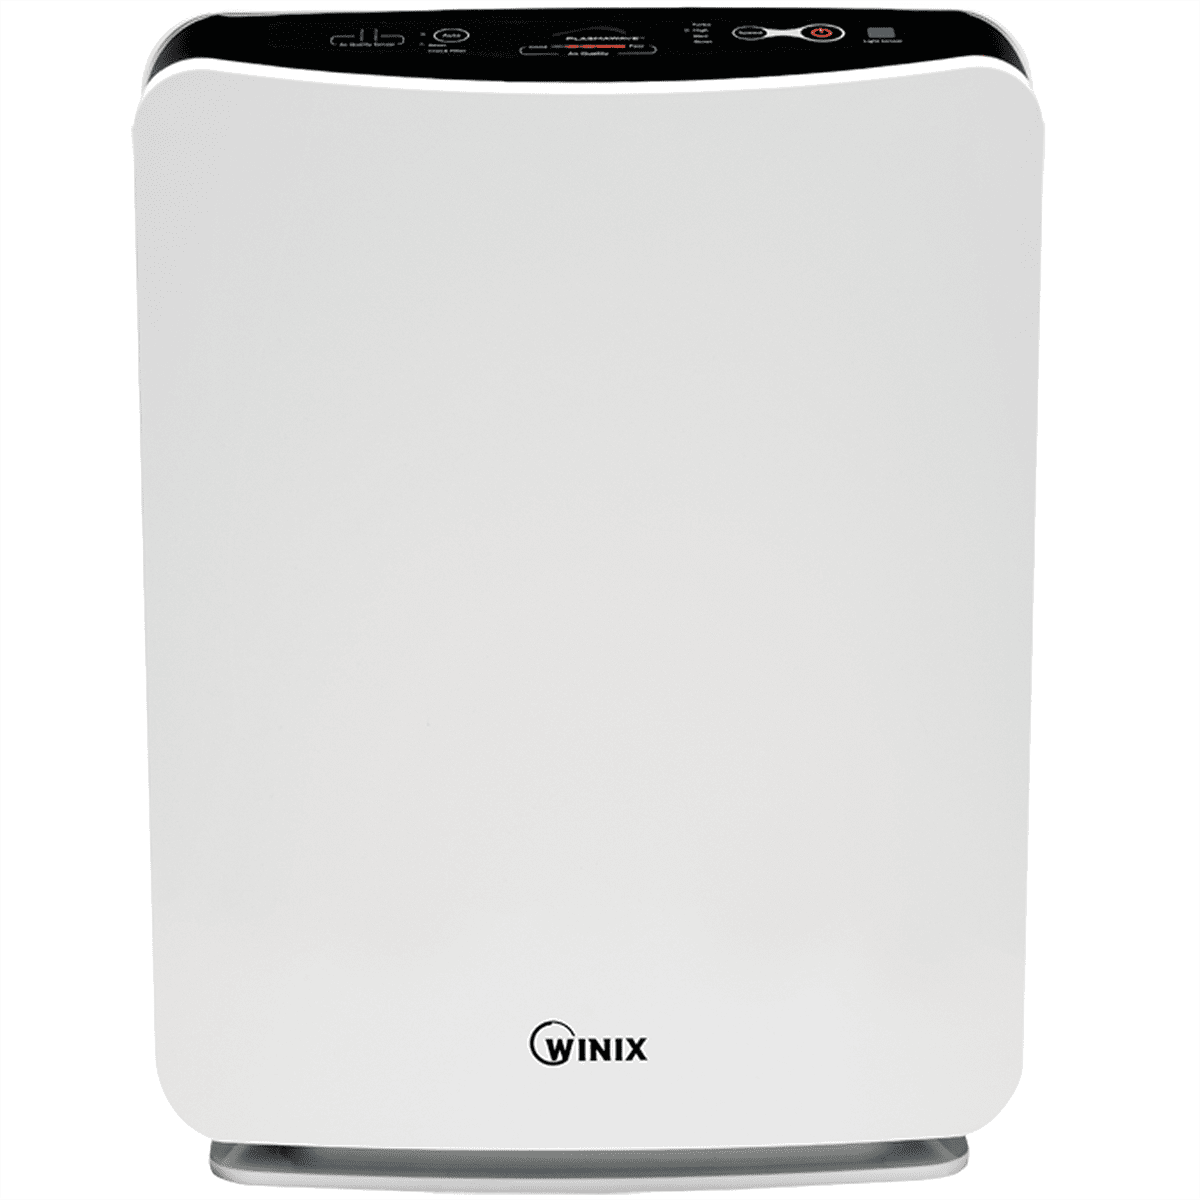 Winix P450 FresHome HEPA Air Cleaner with PlasmaWave Technology wi3083